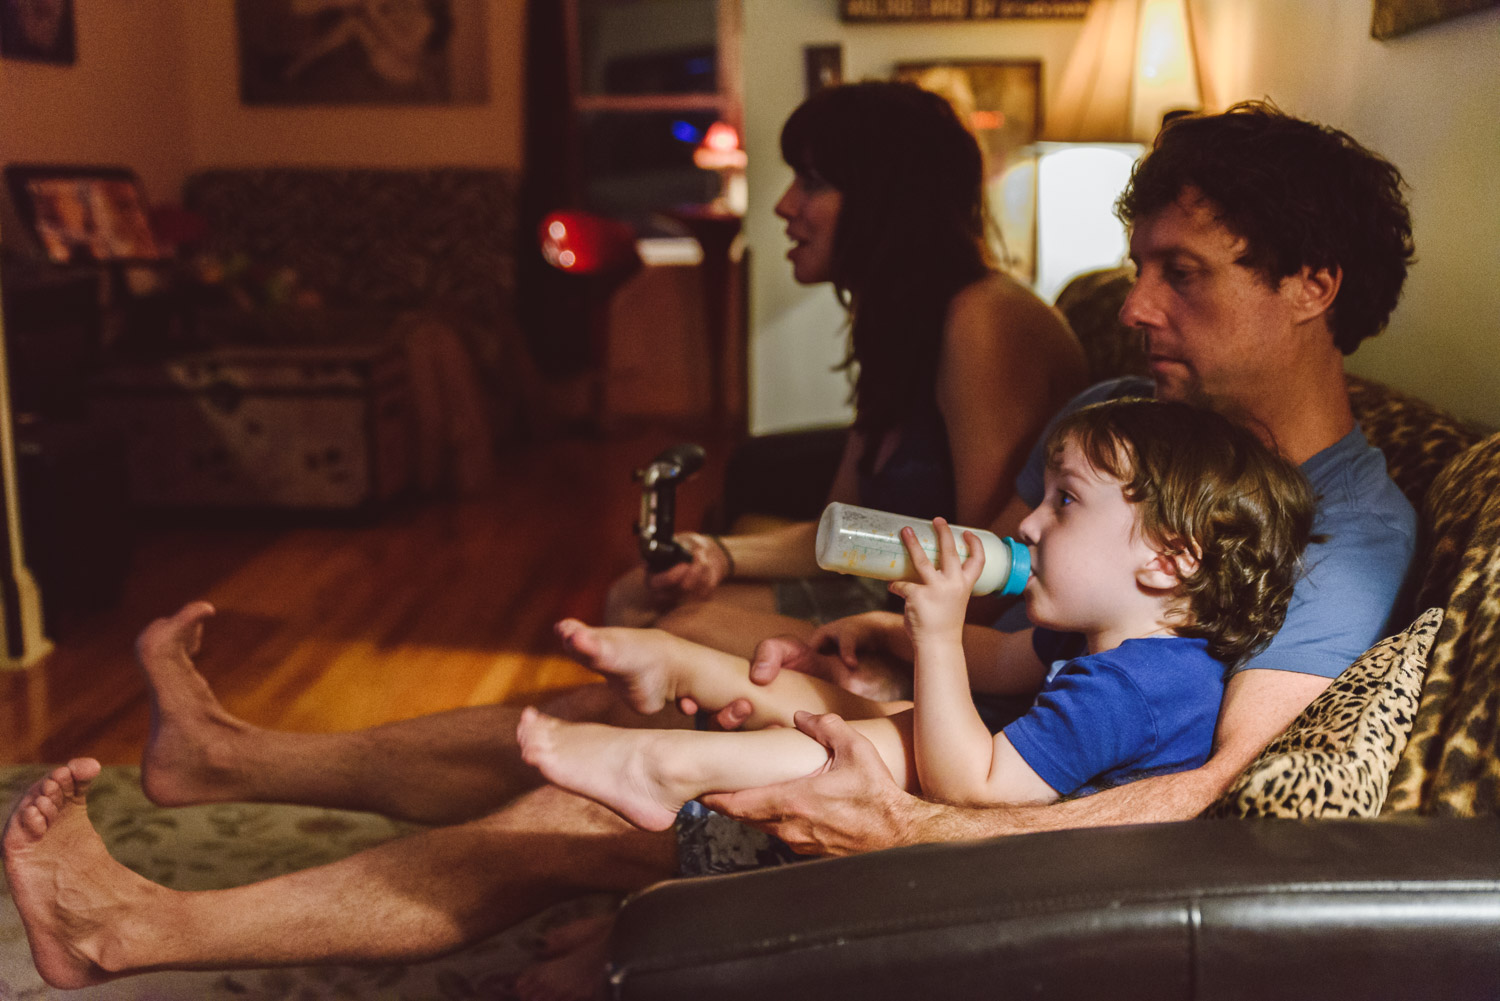 Francesca Russell Photography | Astoria, Queens Family Photographer | Winding Down